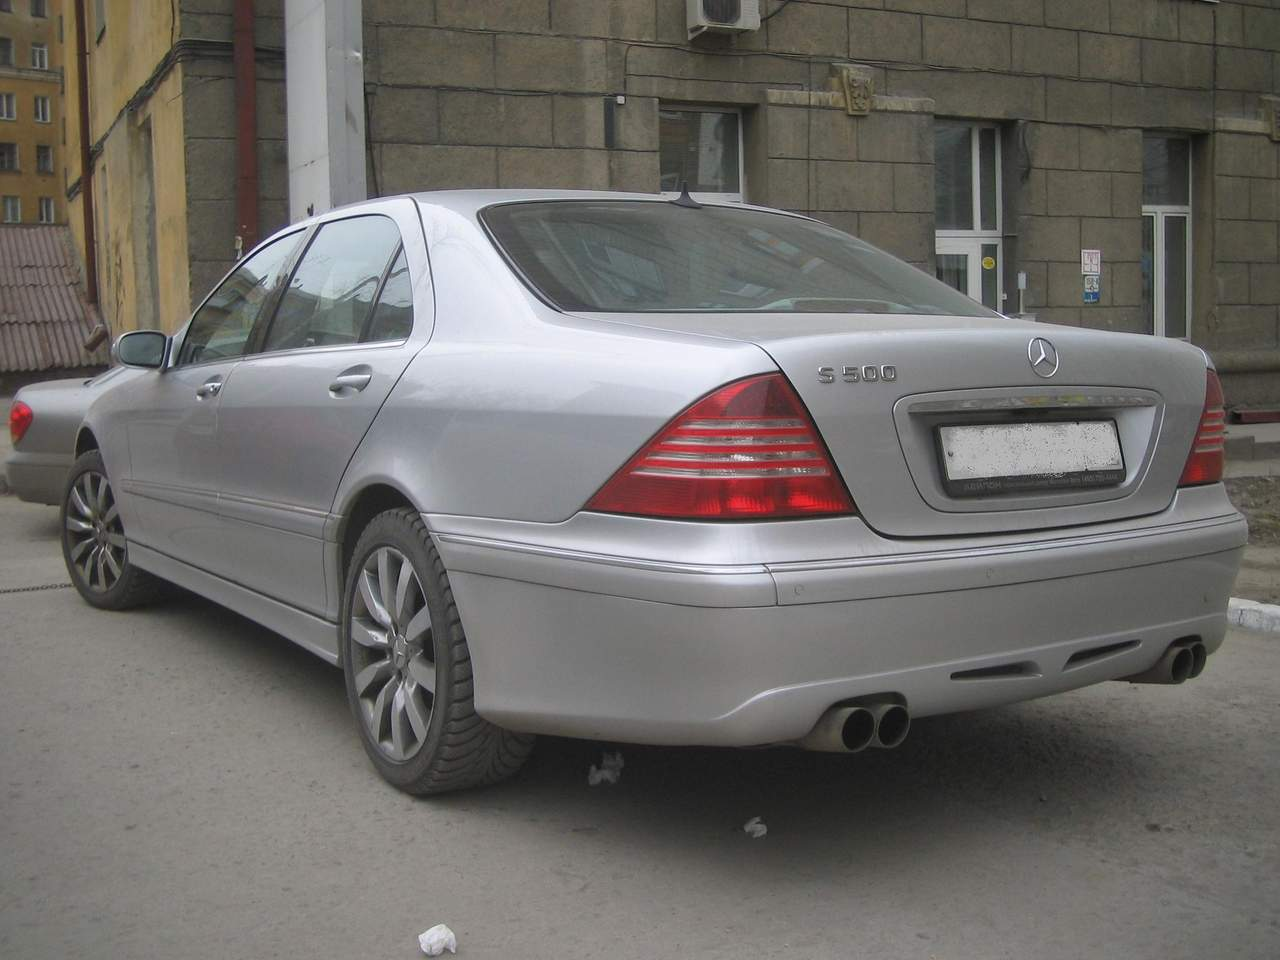 2004 mercedes benz s class pictures gasoline automatic for sale. Black Bedroom Furniture Sets. Home Design Ideas